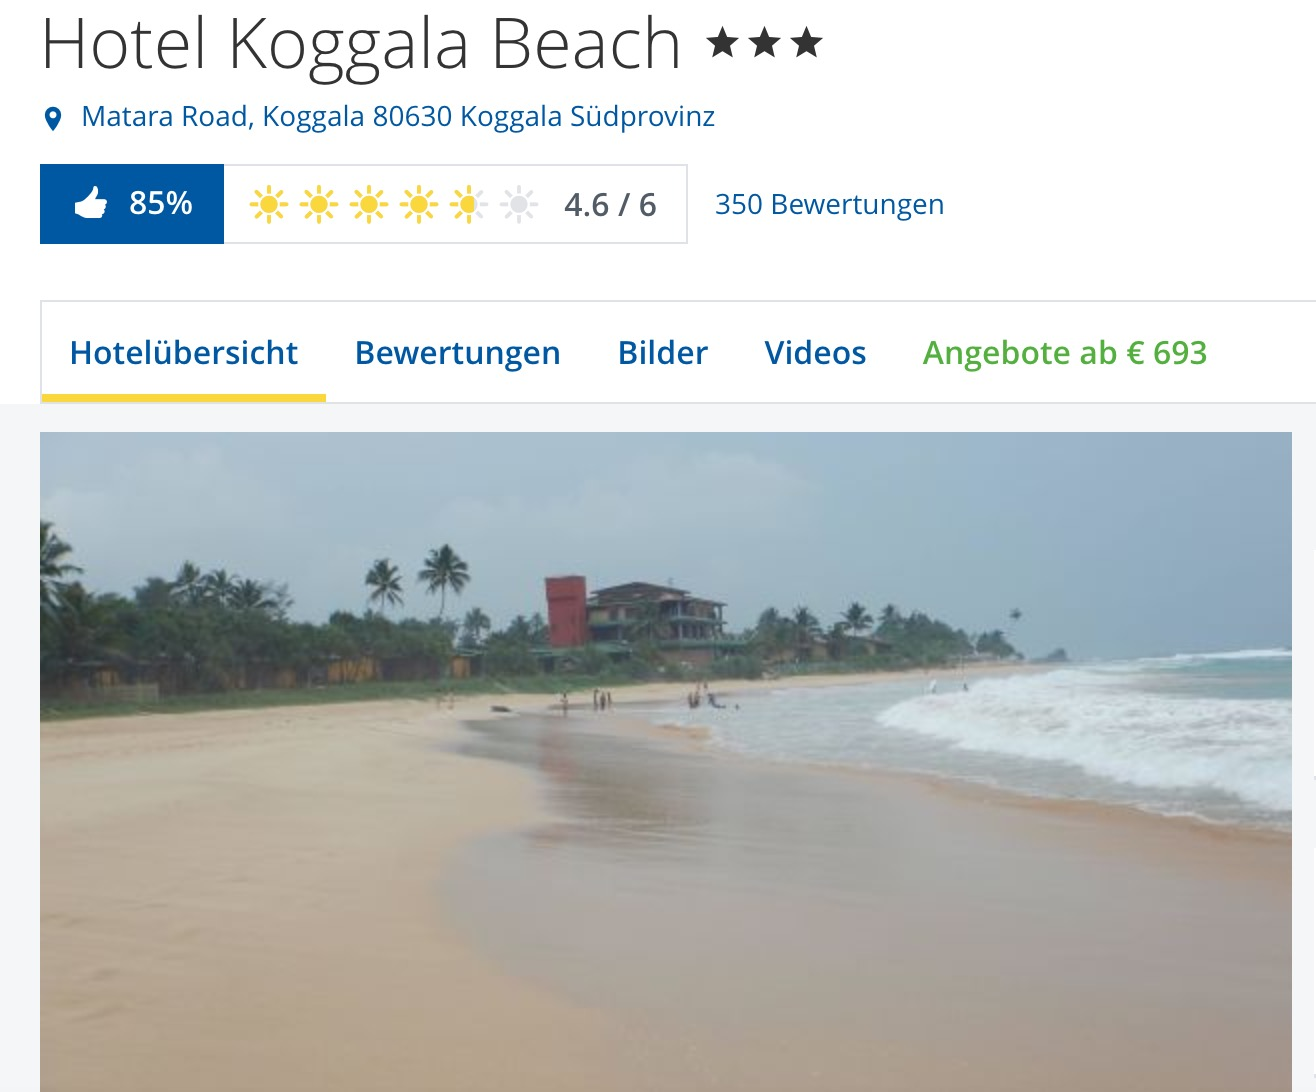 hotel koggala beach auf sri lanka g nstig buchen reiserodeo. Black Bedroom Furniture Sets. Home Design Ideas